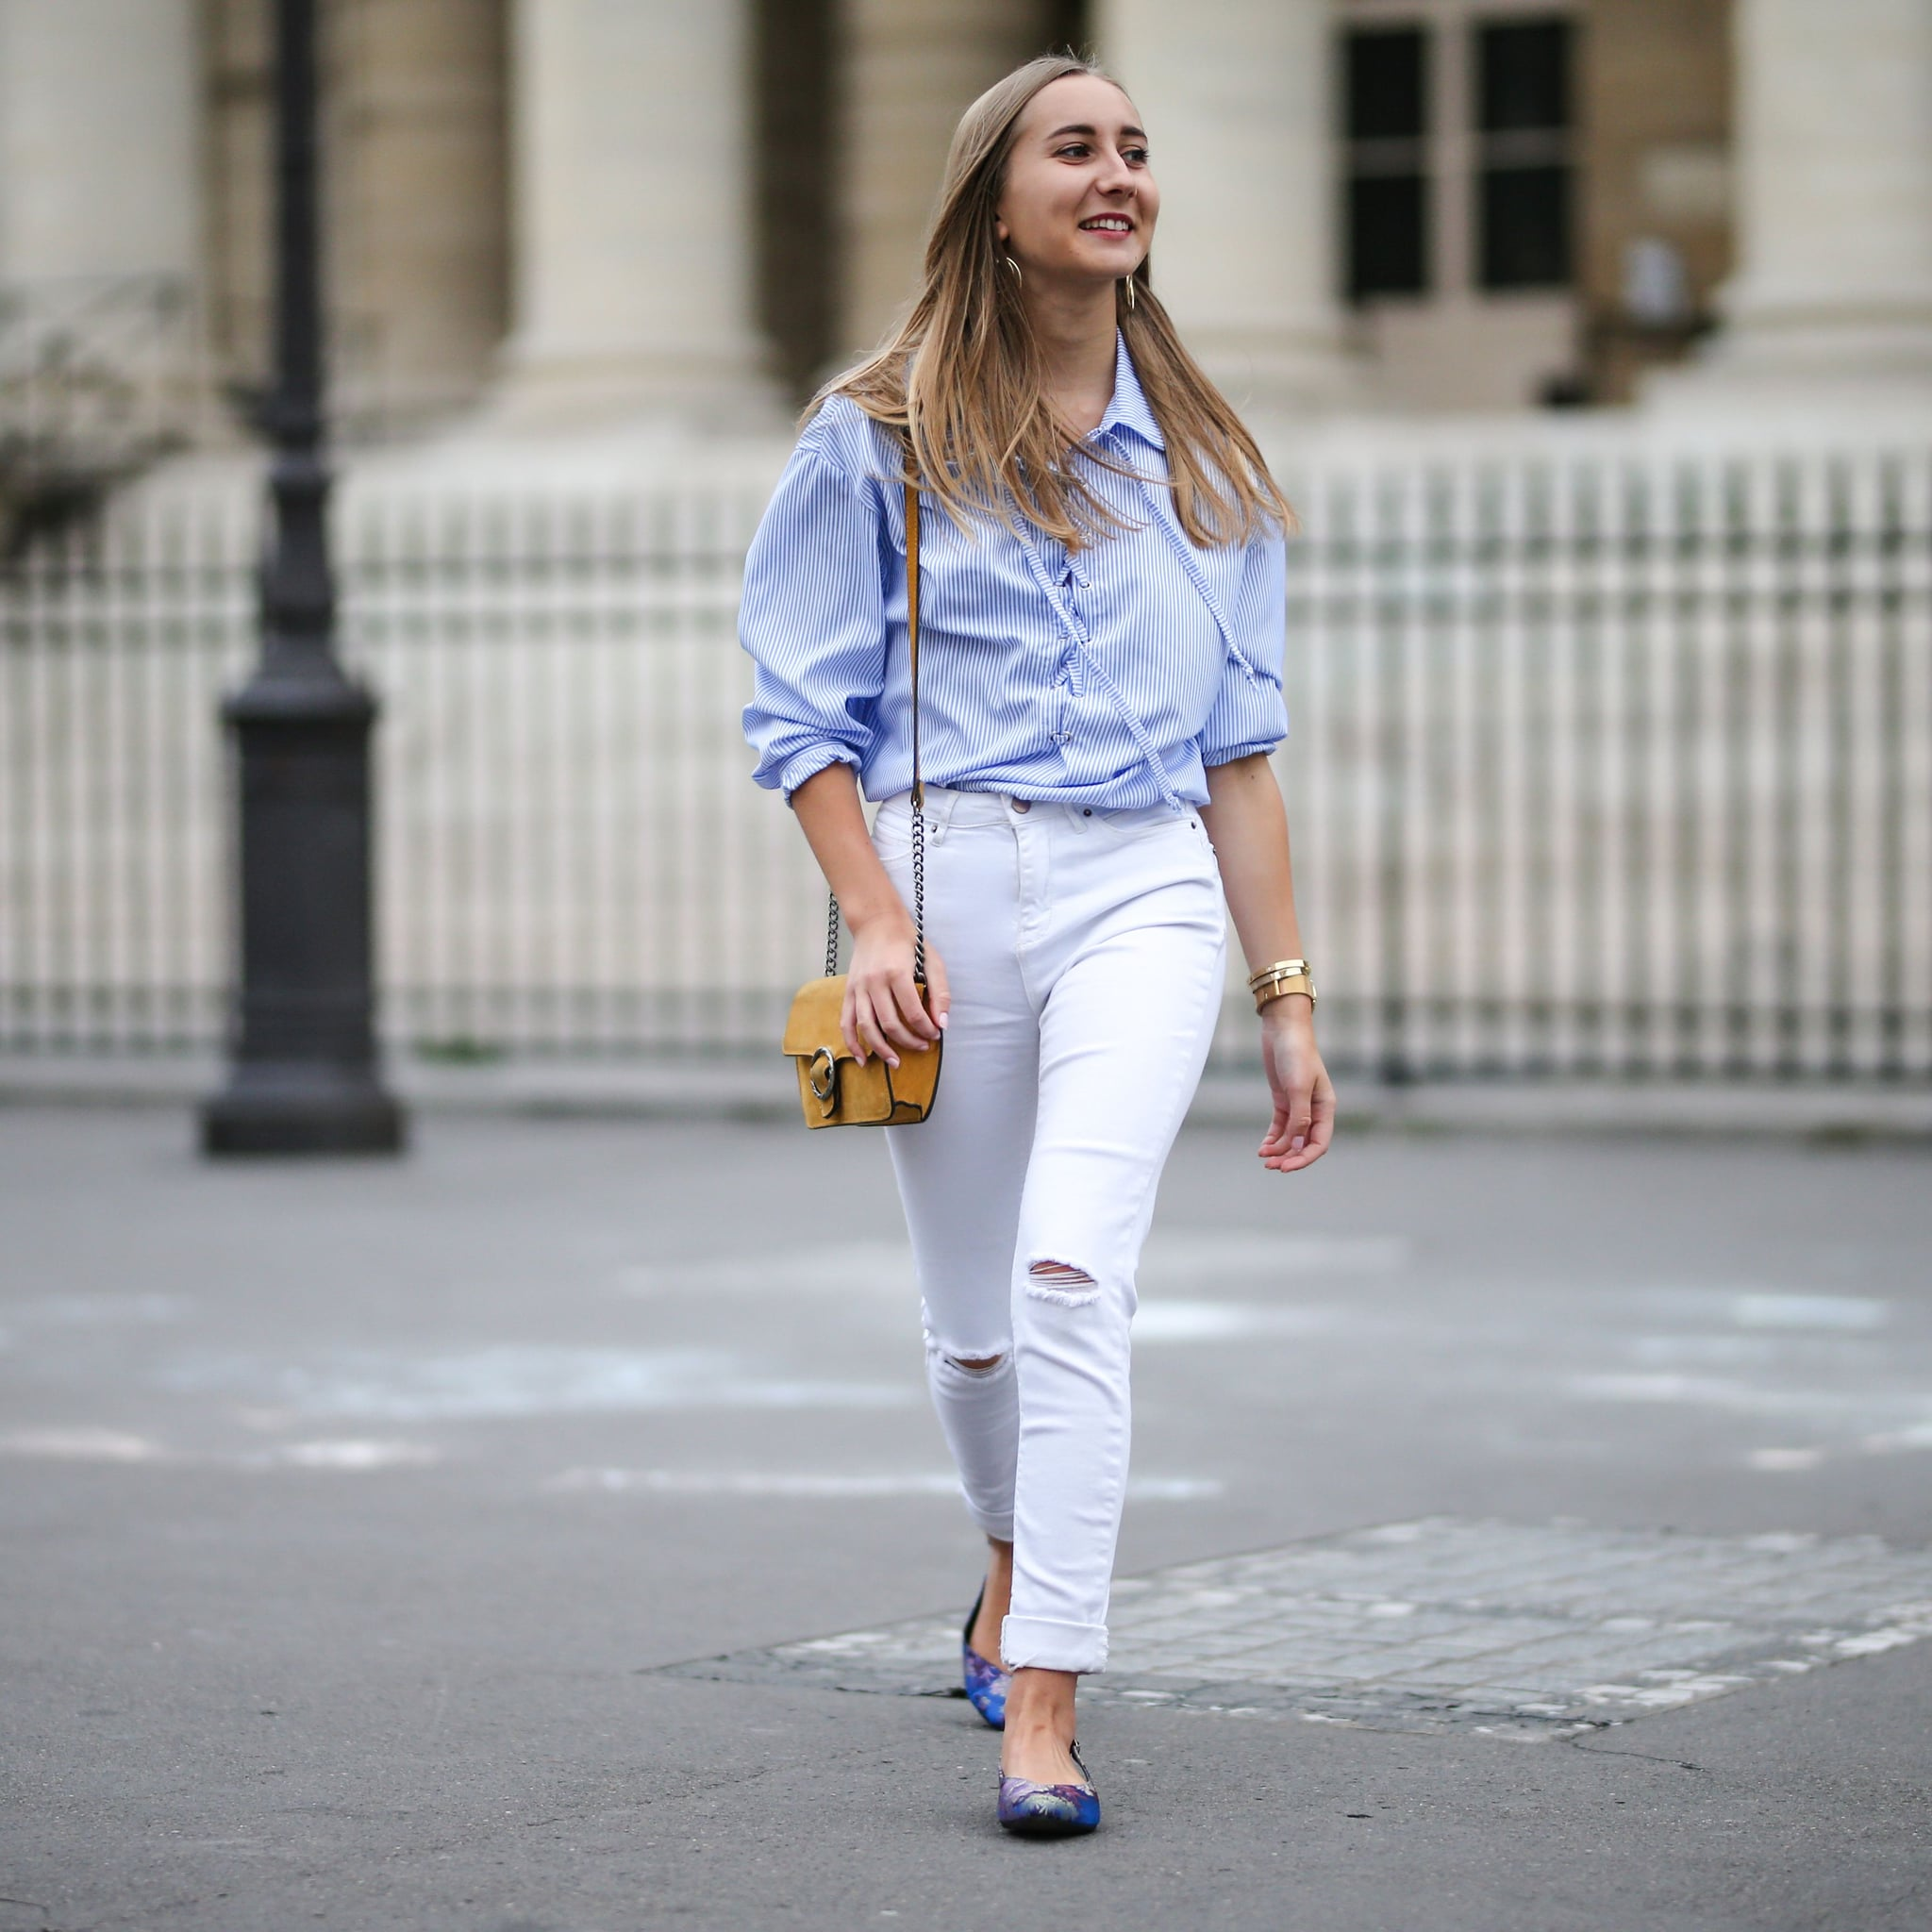 With A Lacy White Shirt And Beige Sandals White Jeans Outfit Ideas Popsugar Fashion Photo 10